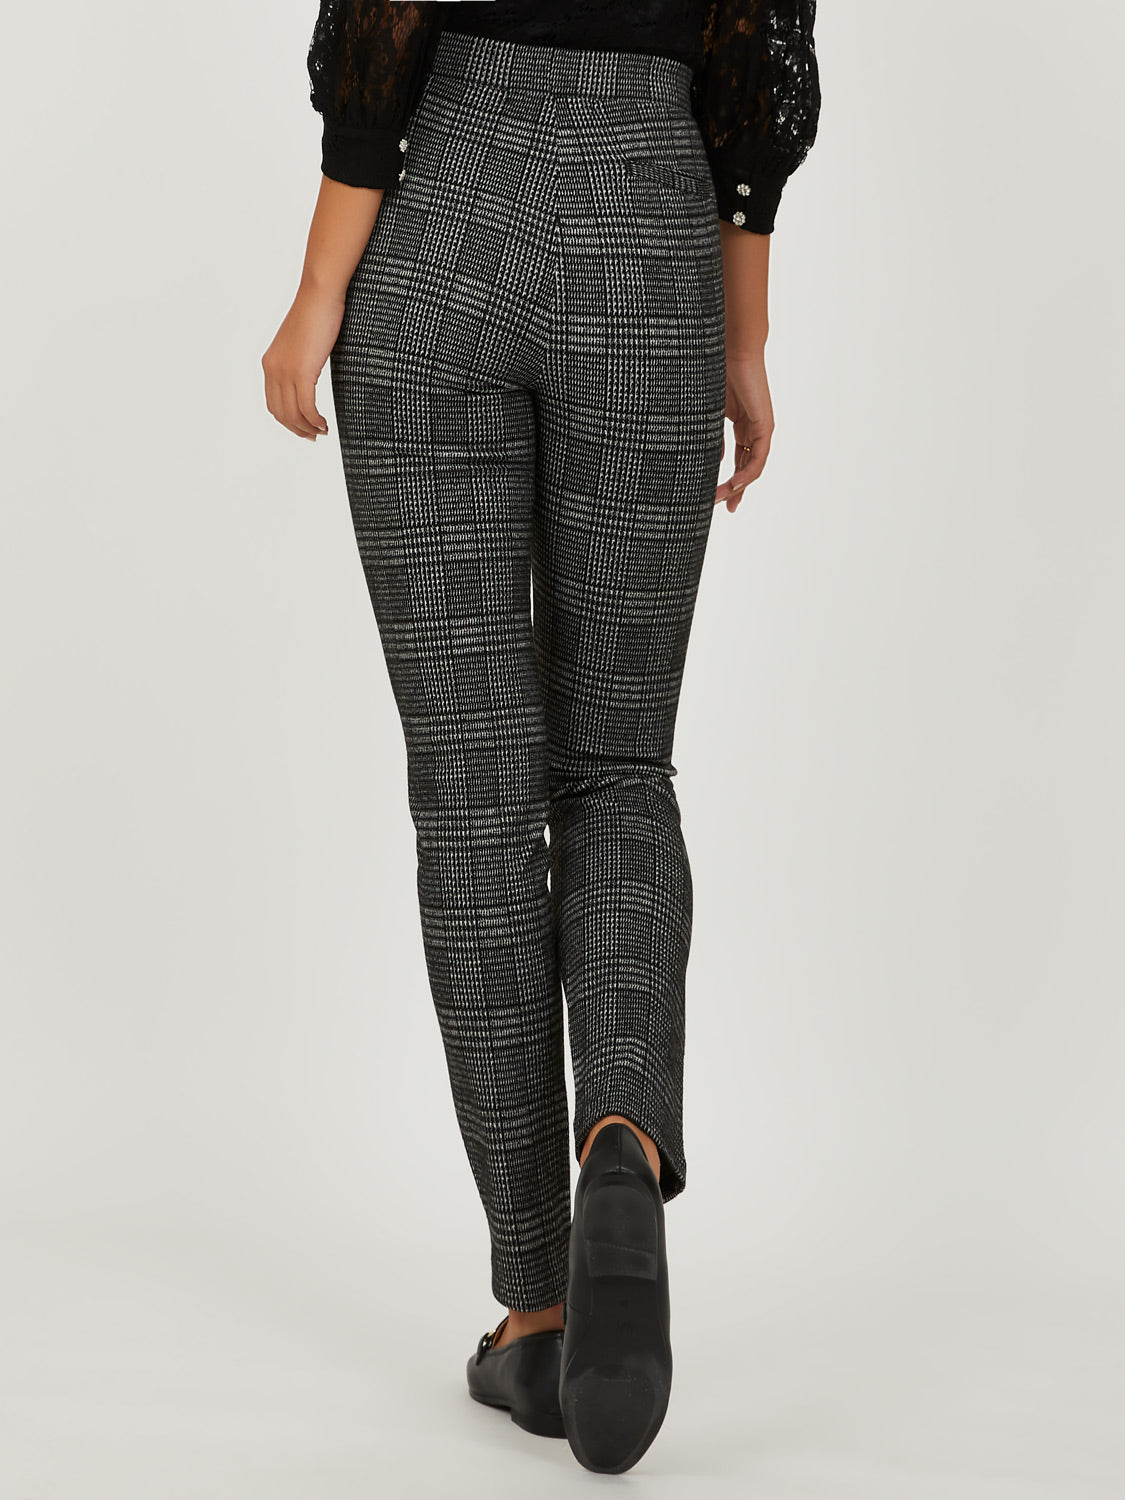 Glen Check Jacquard Trouser